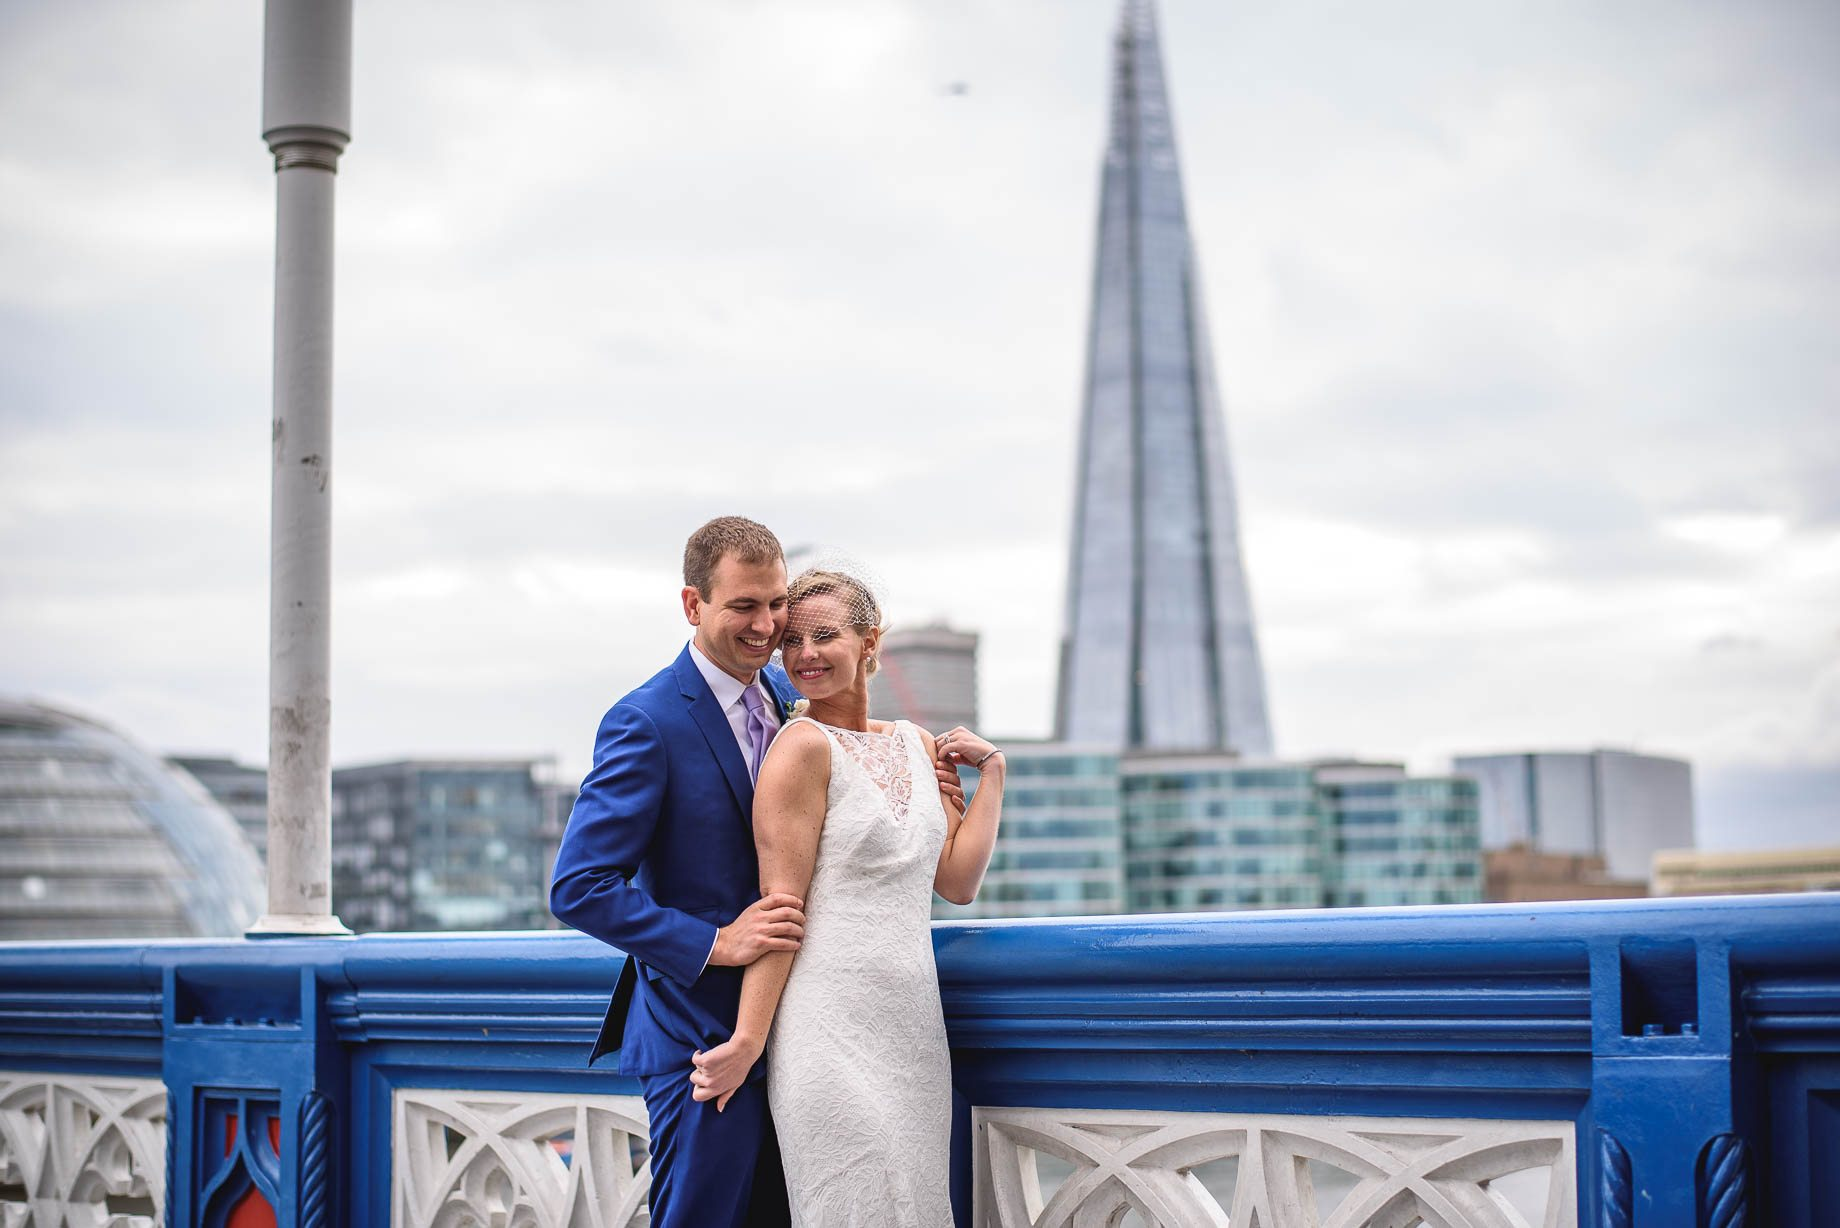 Bllomsbury House wedding photography in London - Katie and Taylor (139 of 156)